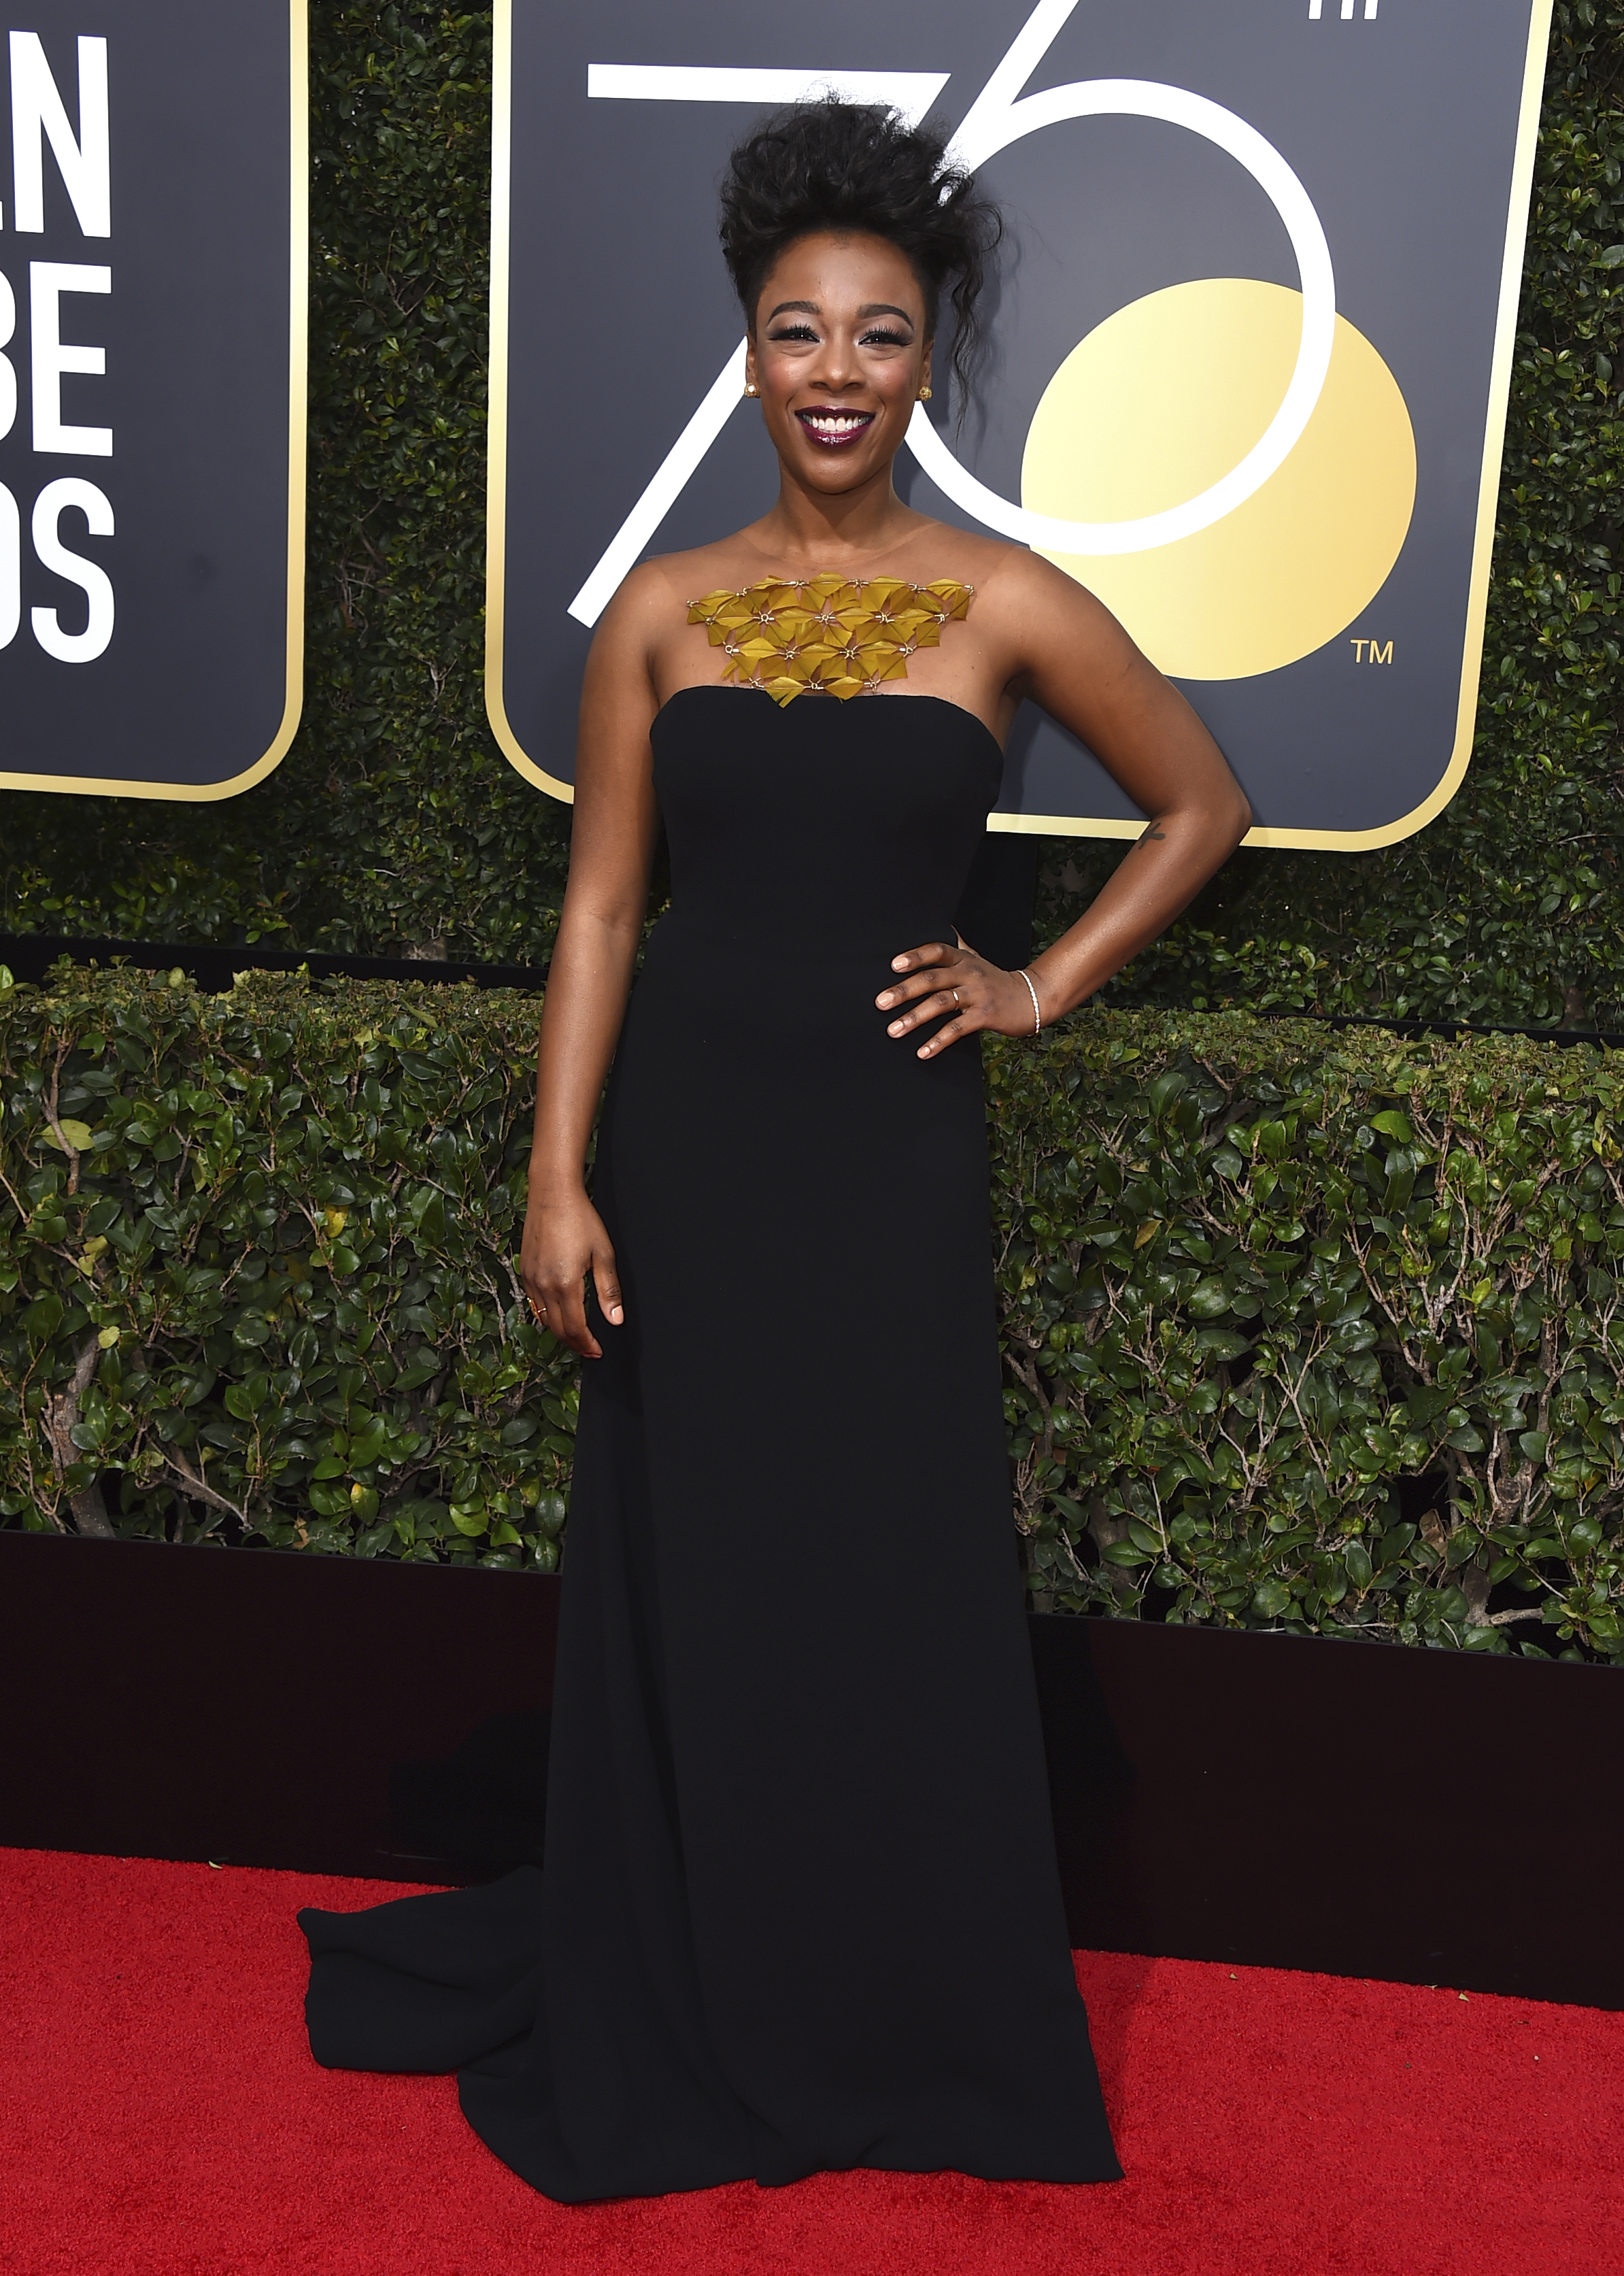 <div class='meta'><div class='origin-logo' data-origin='AP'></div><span class='caption-text' data-credit='Jordan Strauss/Invision/AP'>Samira Wiley arrives at the 75th annual Golden Globe Awards at the Beverly Hilton Hotel on Sunday, Jan. 7, 2018, in Beverly Hills, Calif.</span></div>